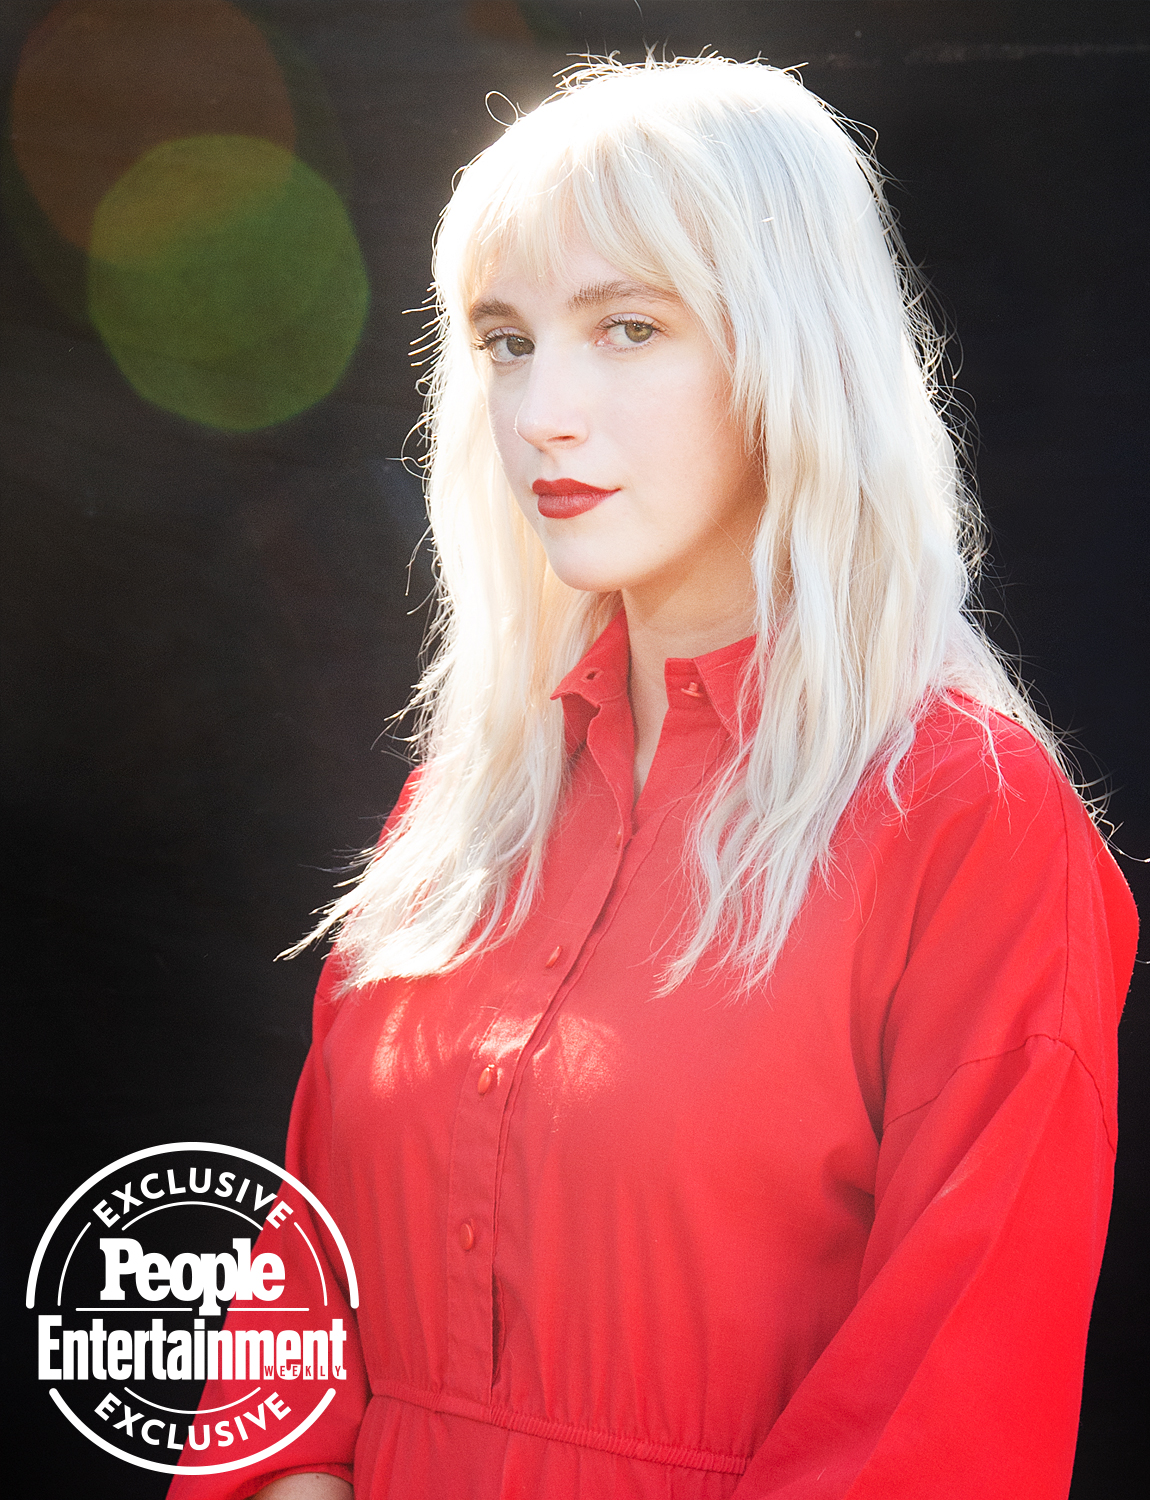 Girlpuppy photographed at Riot Fest 2021